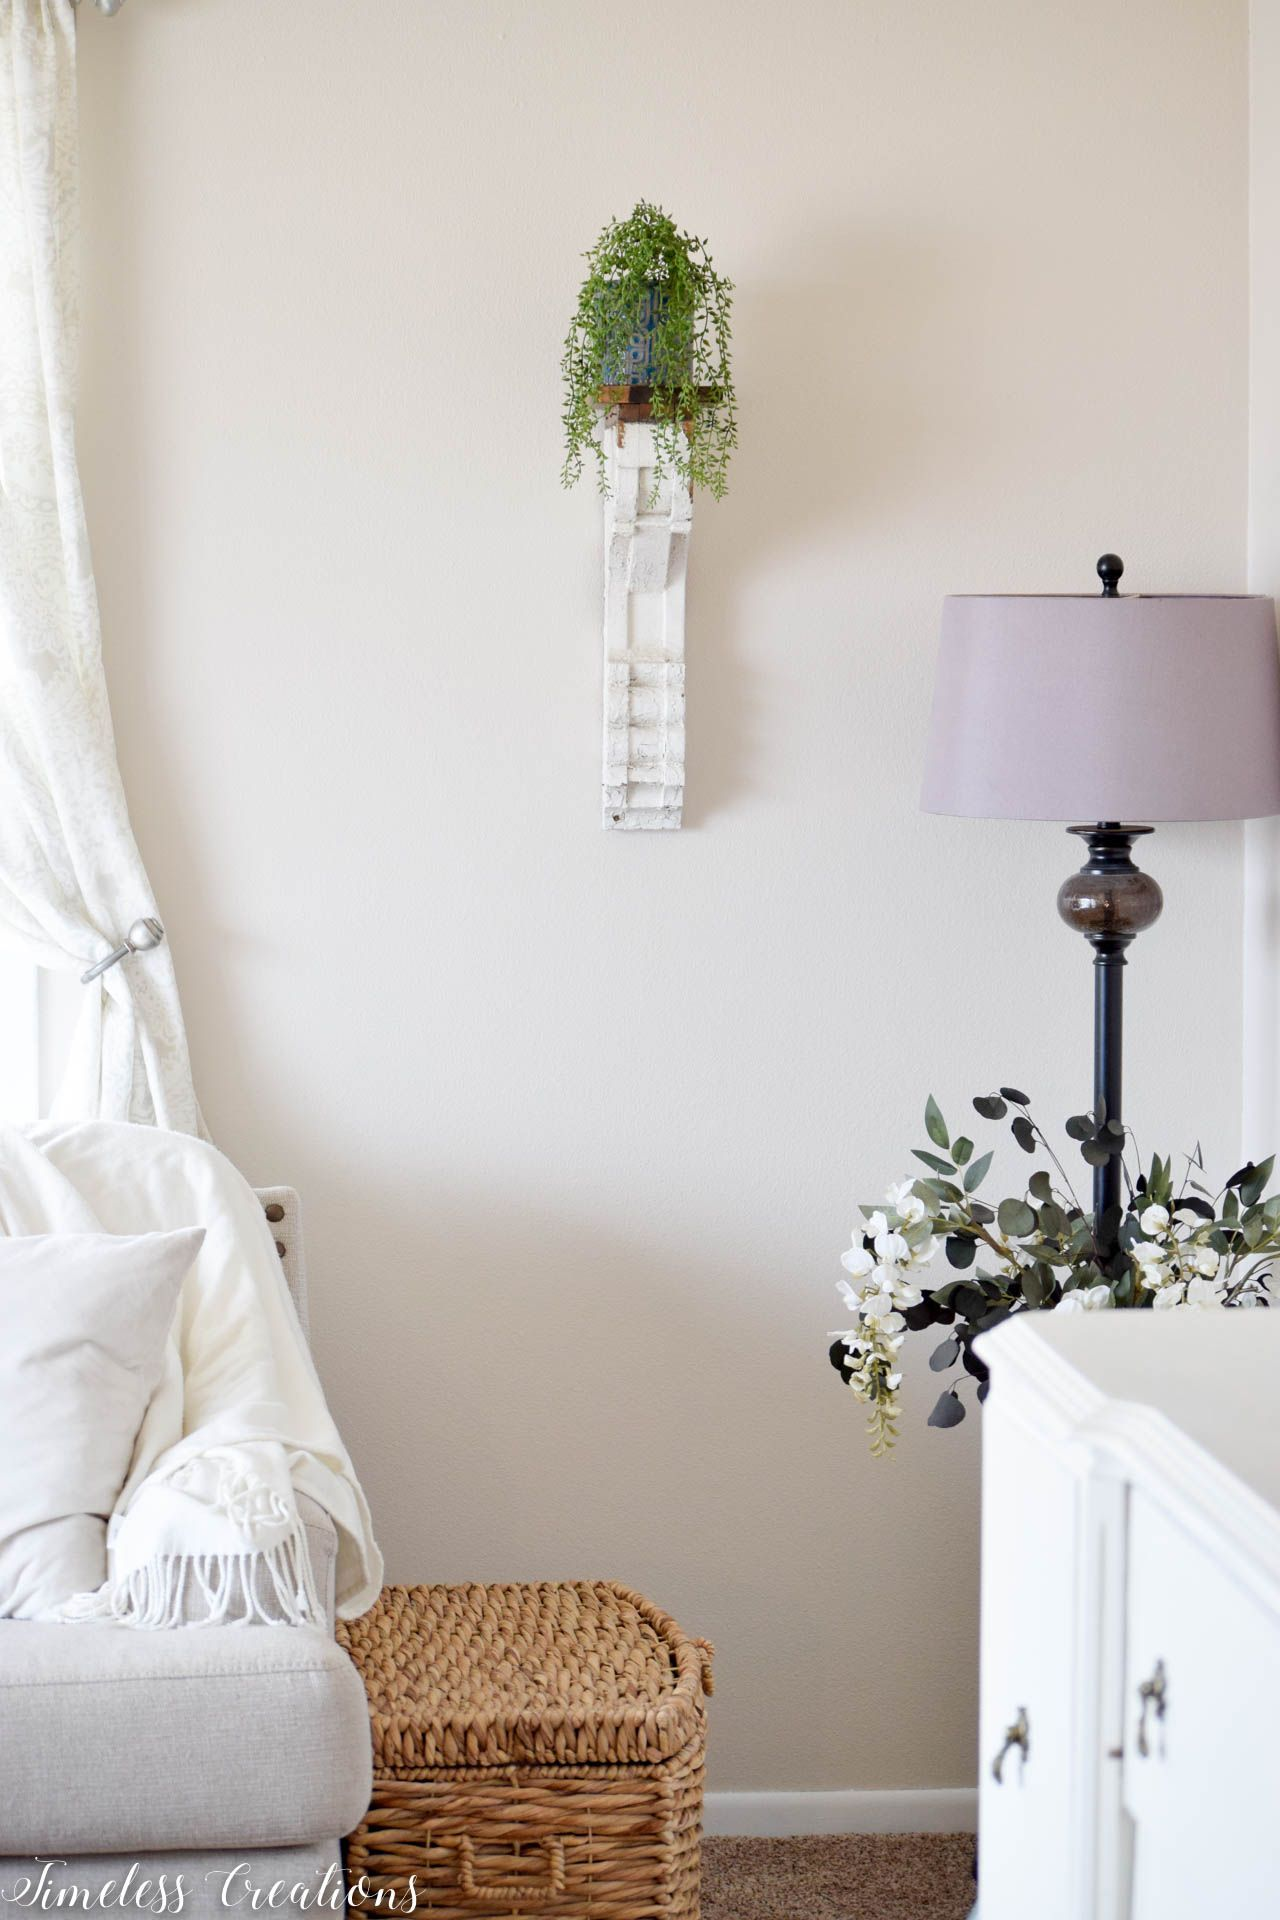 Diy Corbell Wall Sconce Timeless Creations Llc